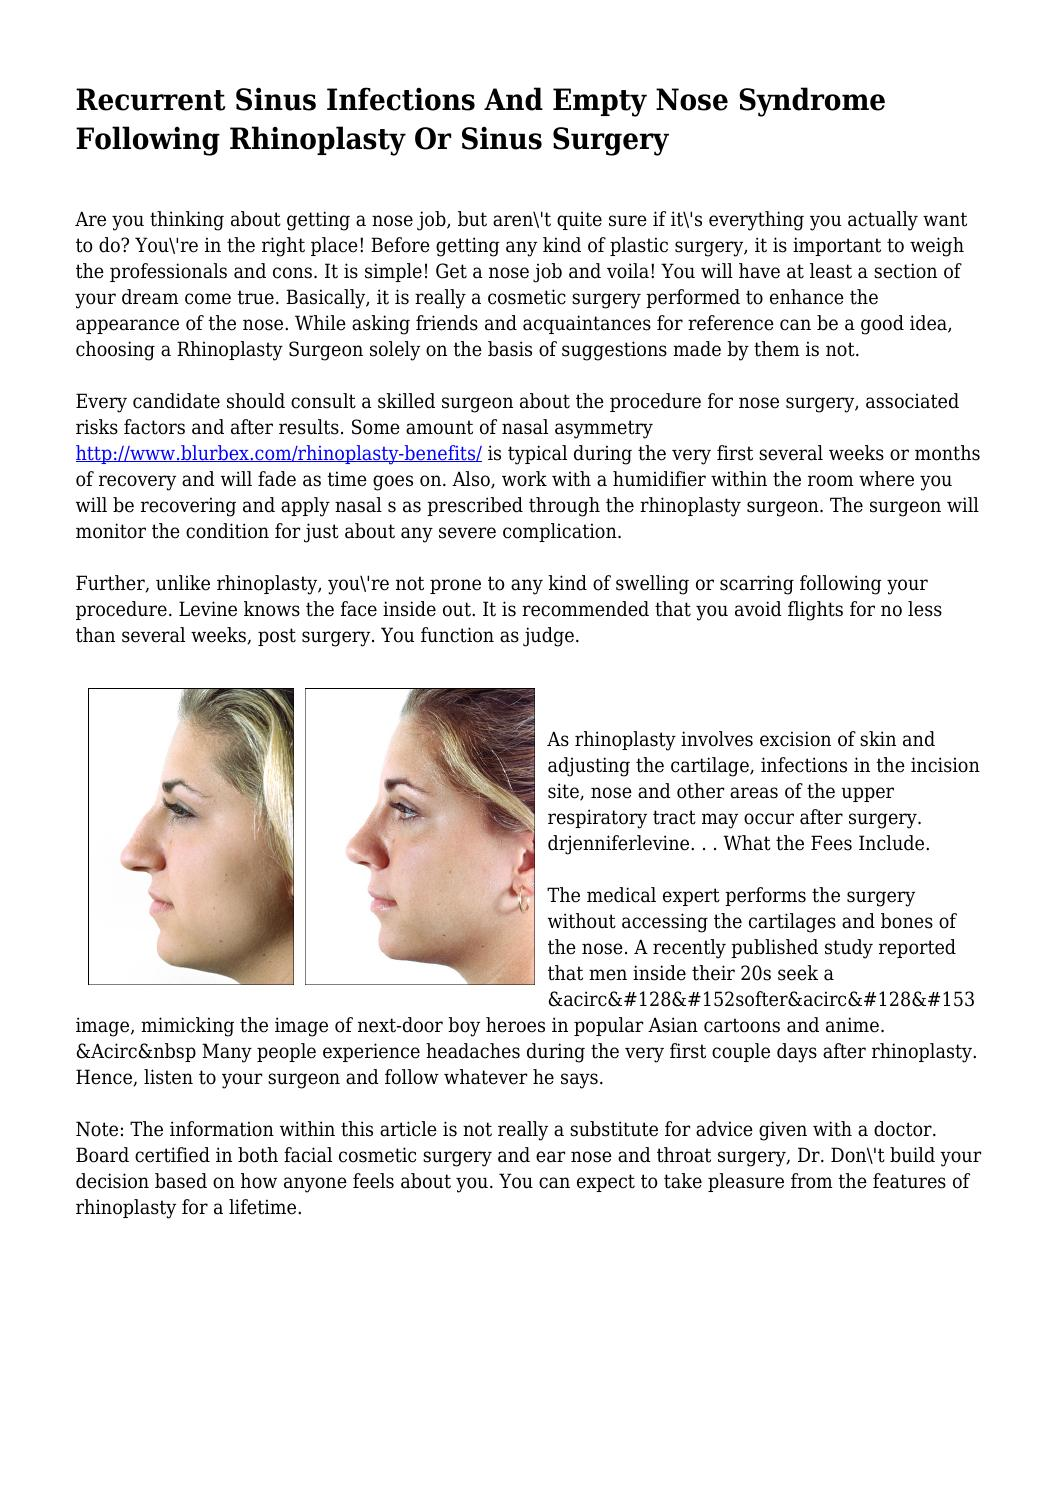 Recurrent Sinus Infections And Empty Nose Syndrome Following